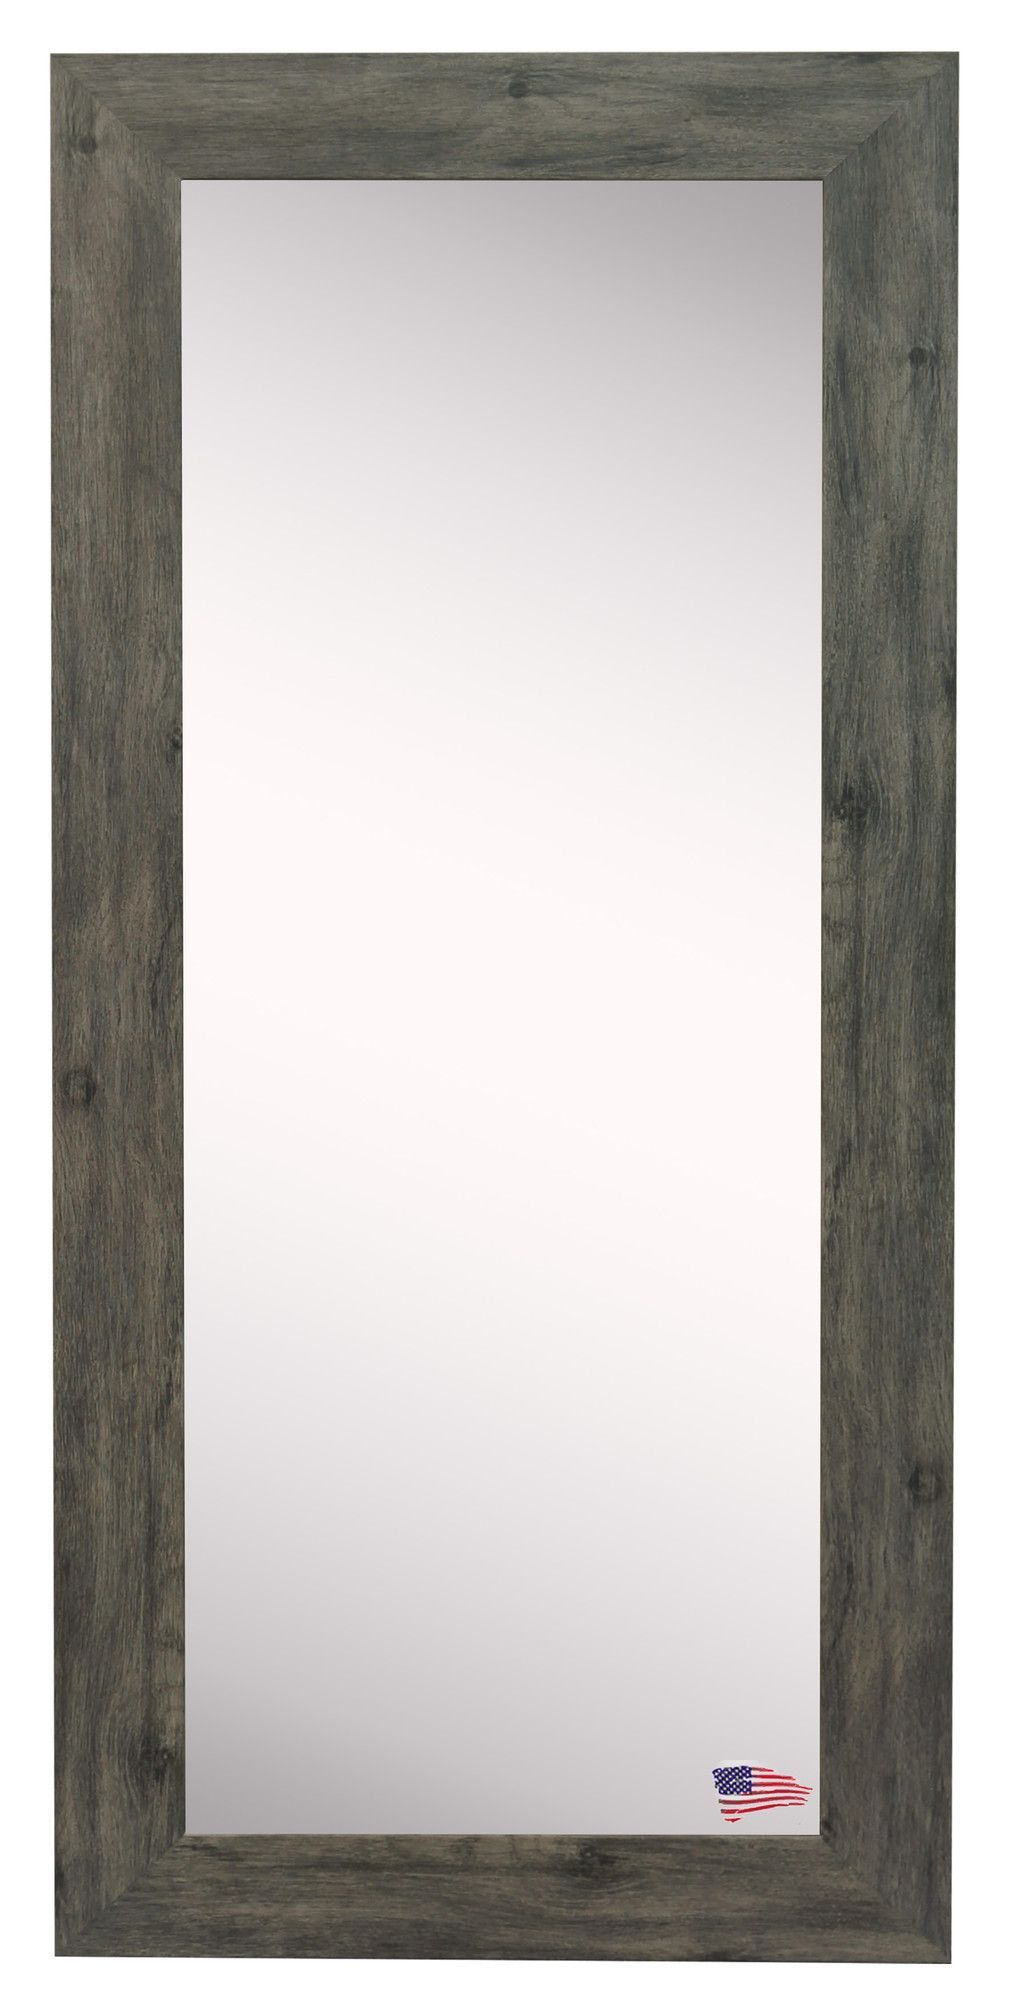 Barnwood Wall Mirror | Vision Board Ideas | Body Mirror Inside Dalessio Wide Tall Full Length Mirrors (Image 3 of 20)